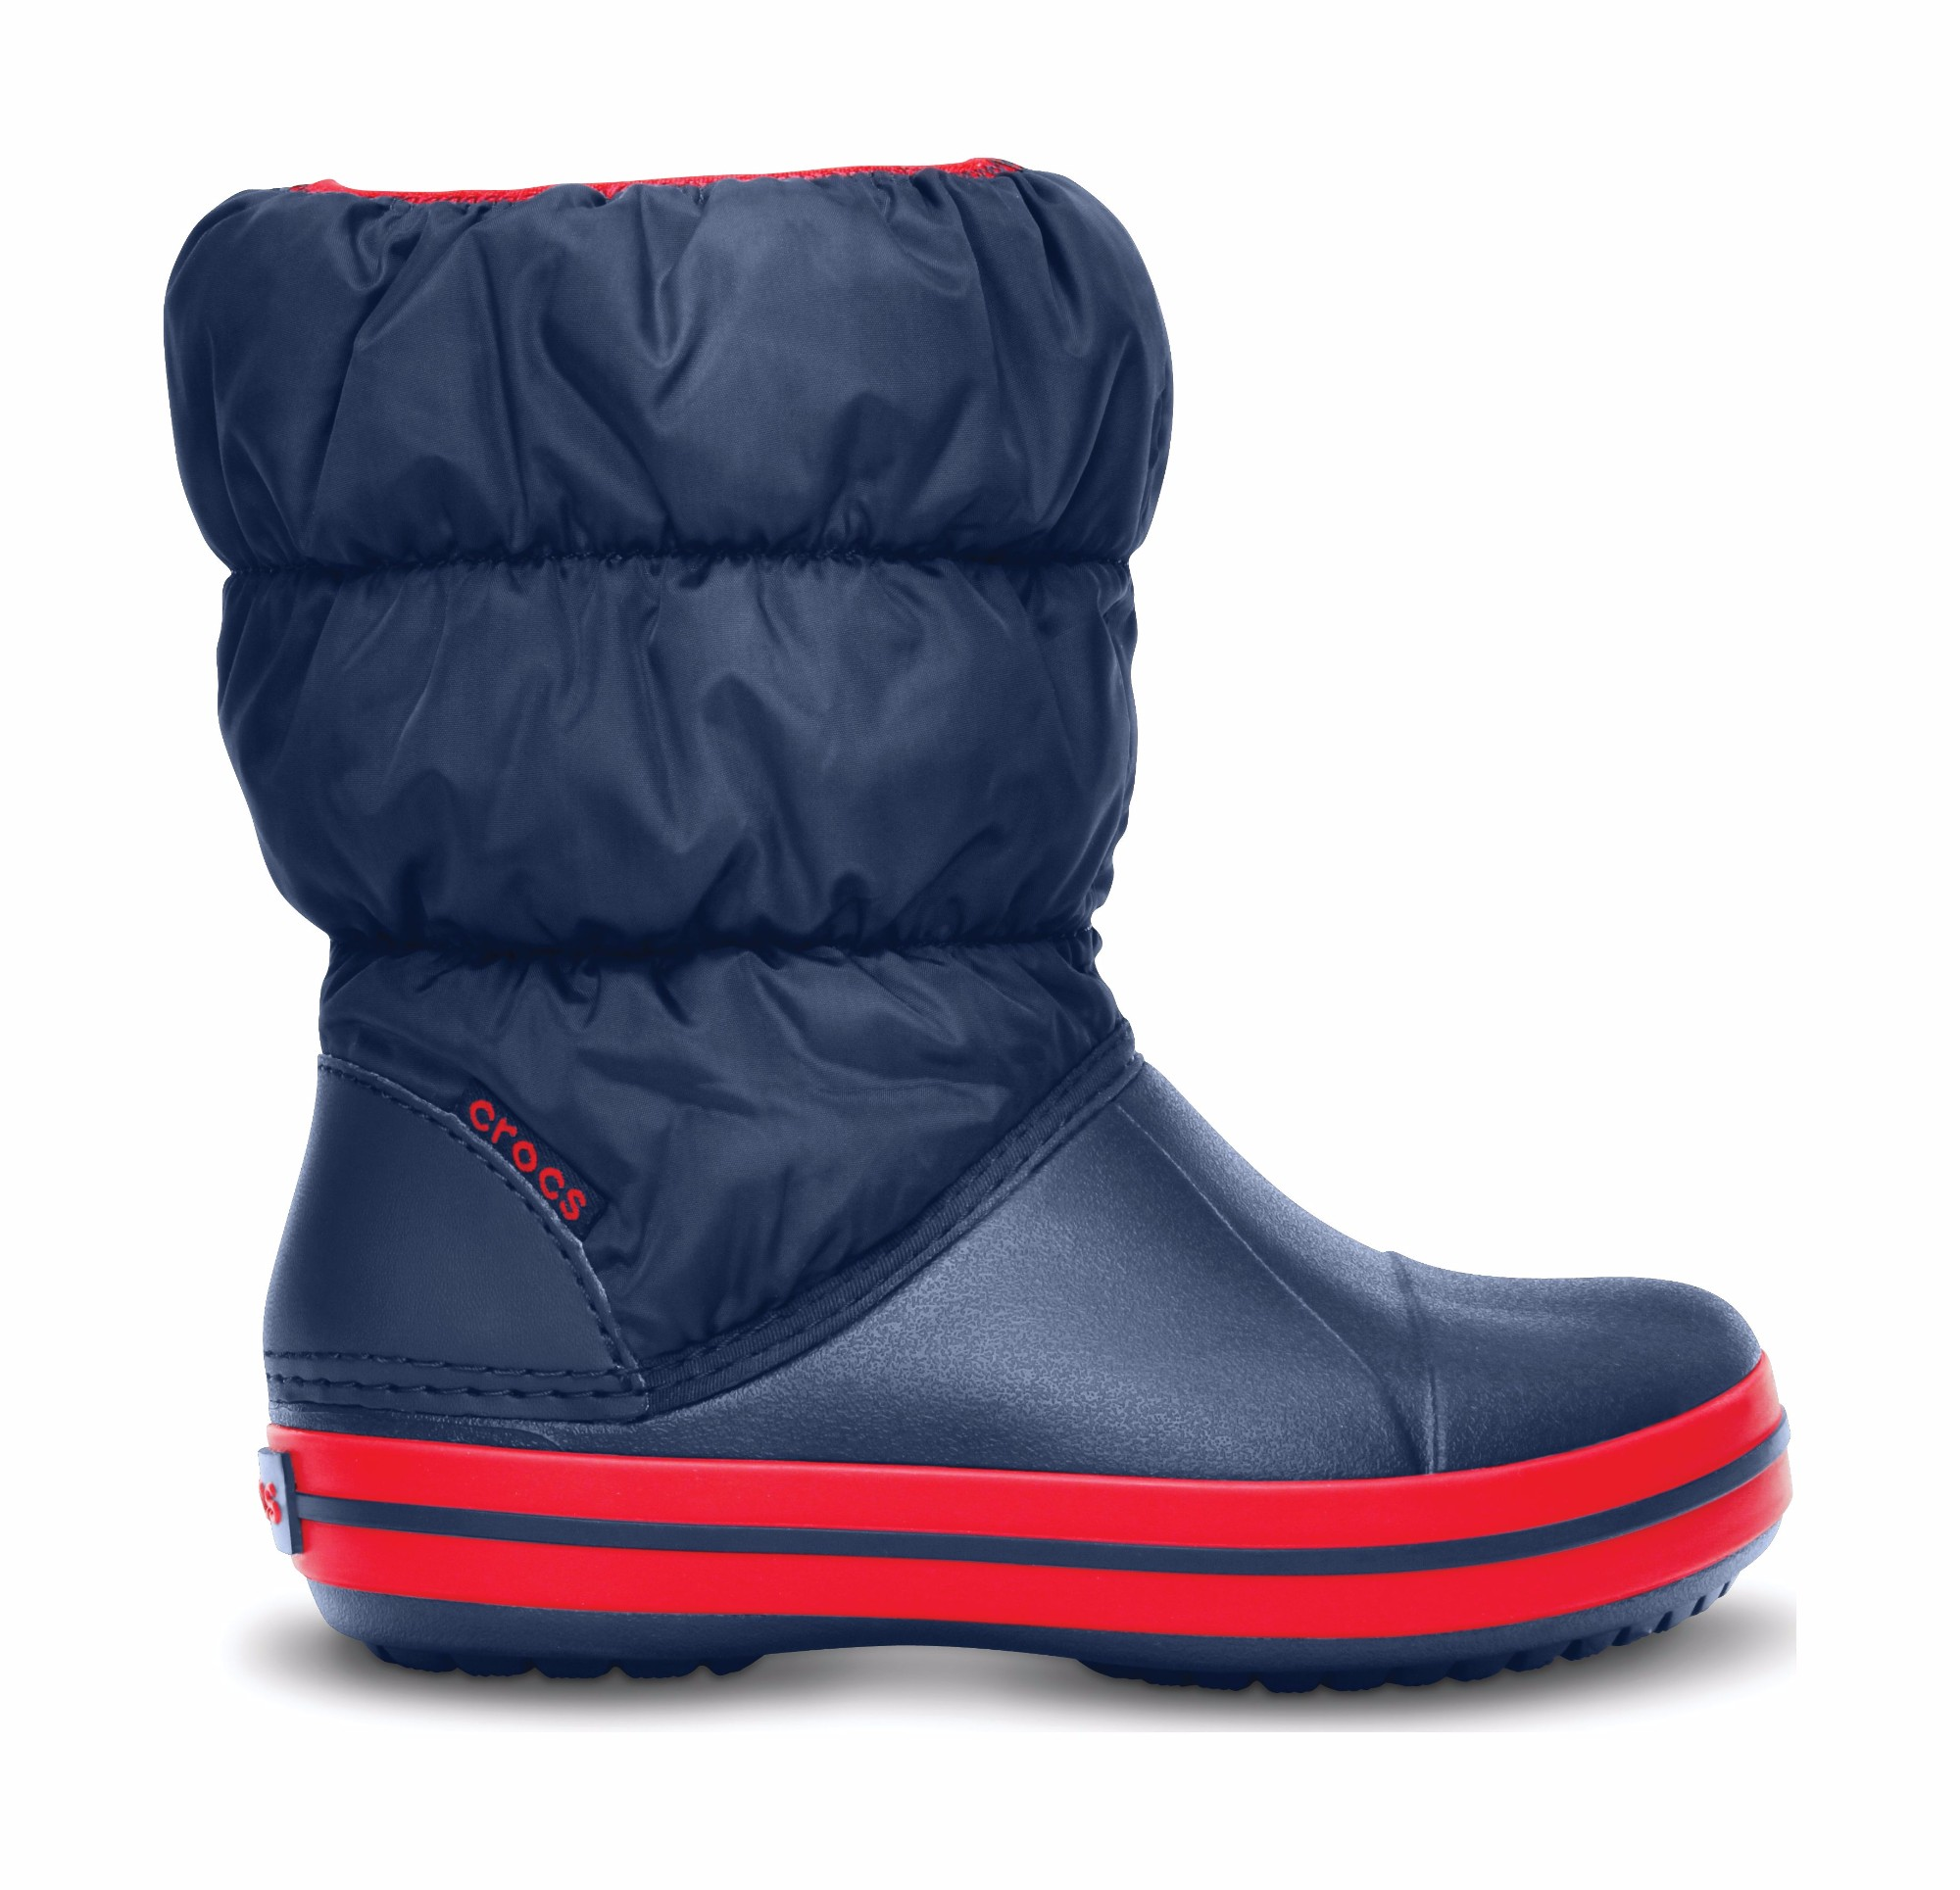 Crocs™ Kids' Winter Puff Boot Dark blue/Red 24